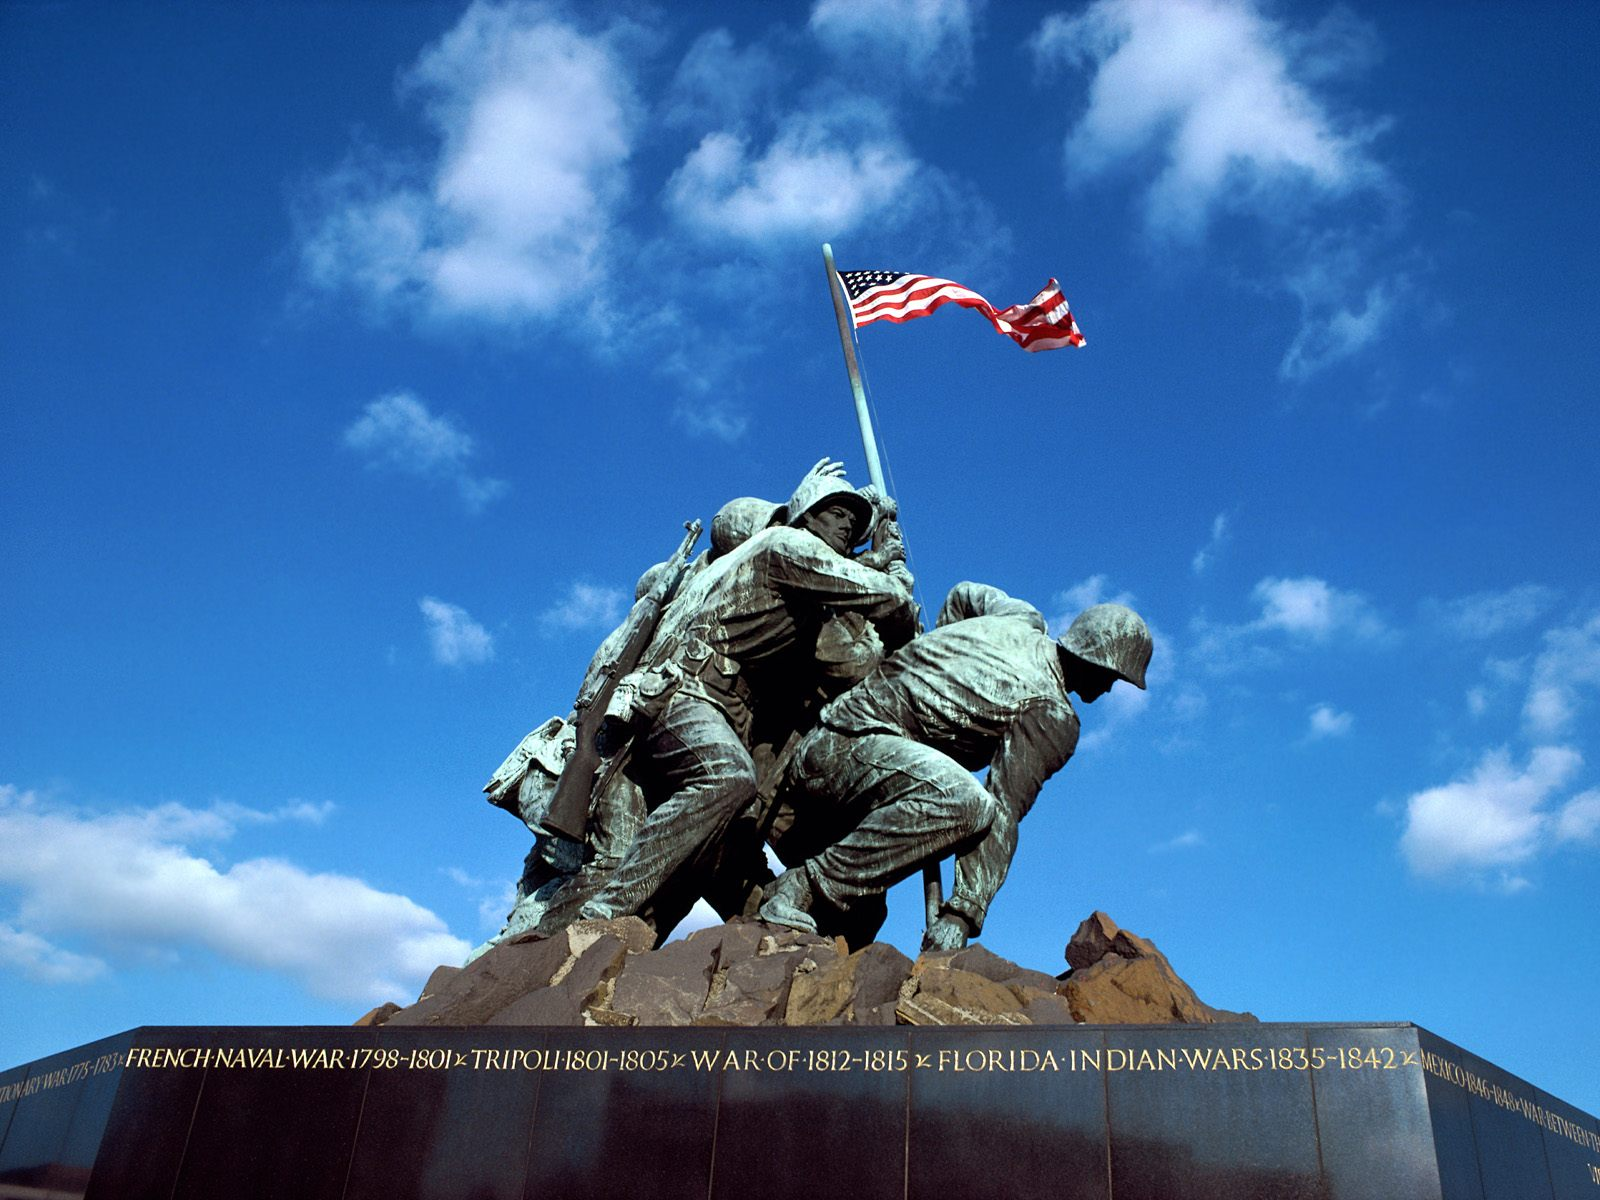 memorial day powerpoint backgrounds download powerpoint tips 1600x1200